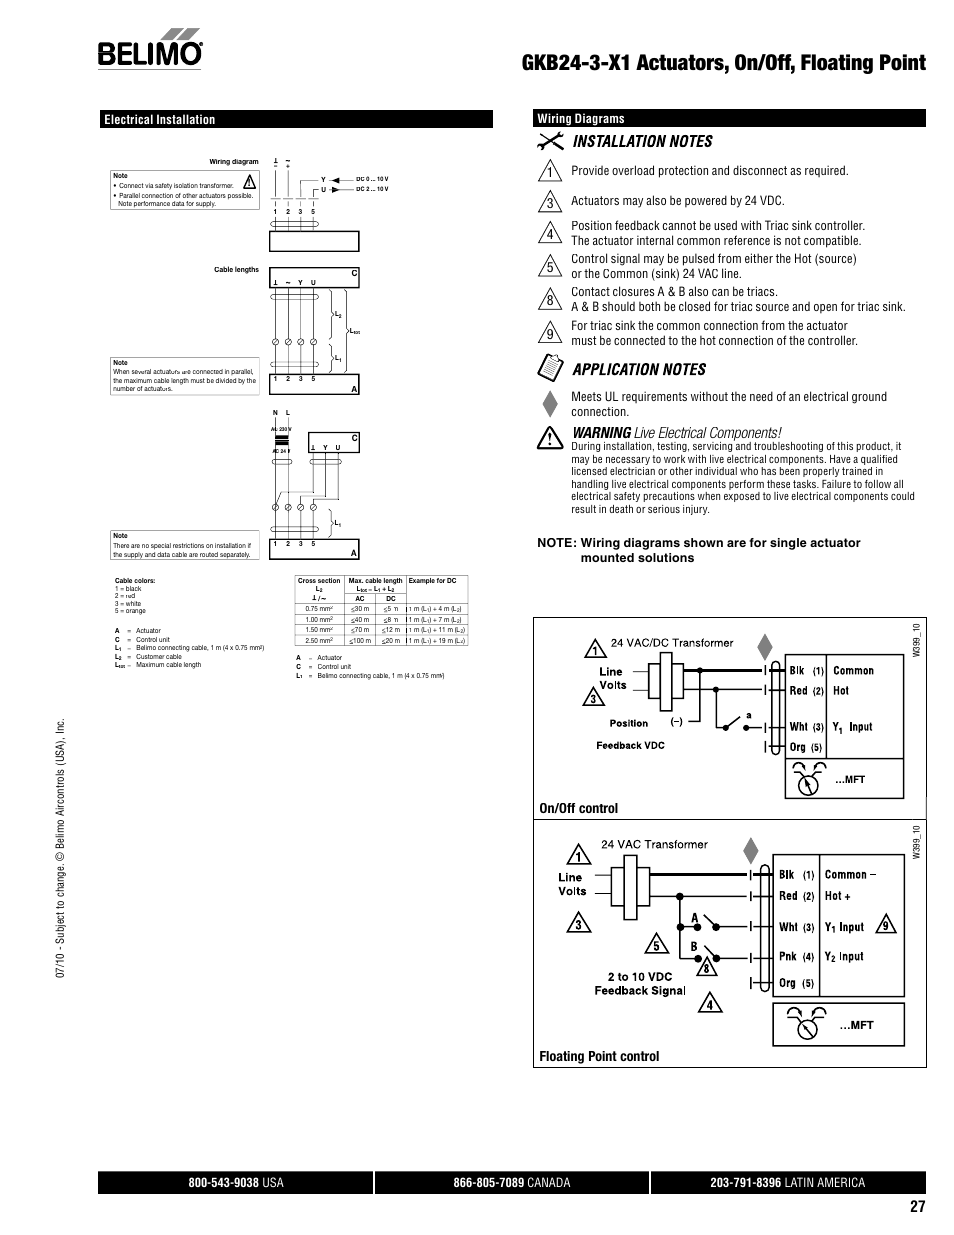 hight resolution of gkb24 3 x1 actuators on off floating point warning live electrical components g on off control off l aerco belimo f7 hd hdu series valve user